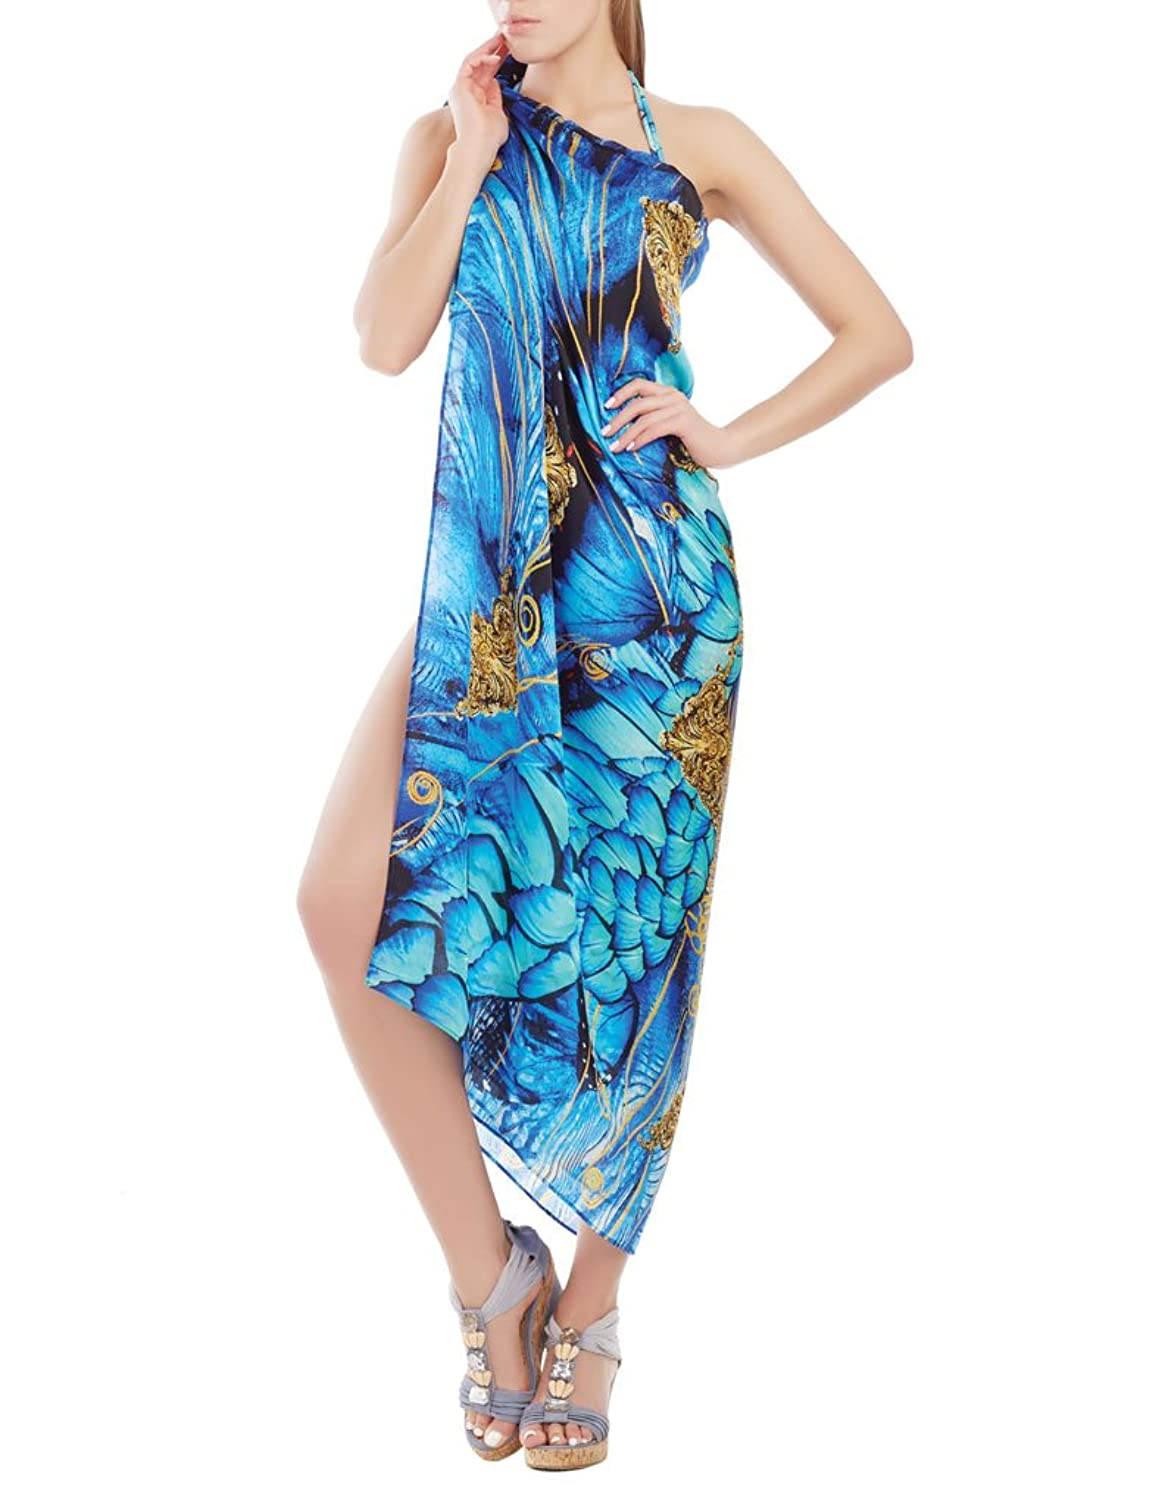 Marc and Andre CU17-03-1703 Women's Blue Butterfly Sarong Pareo